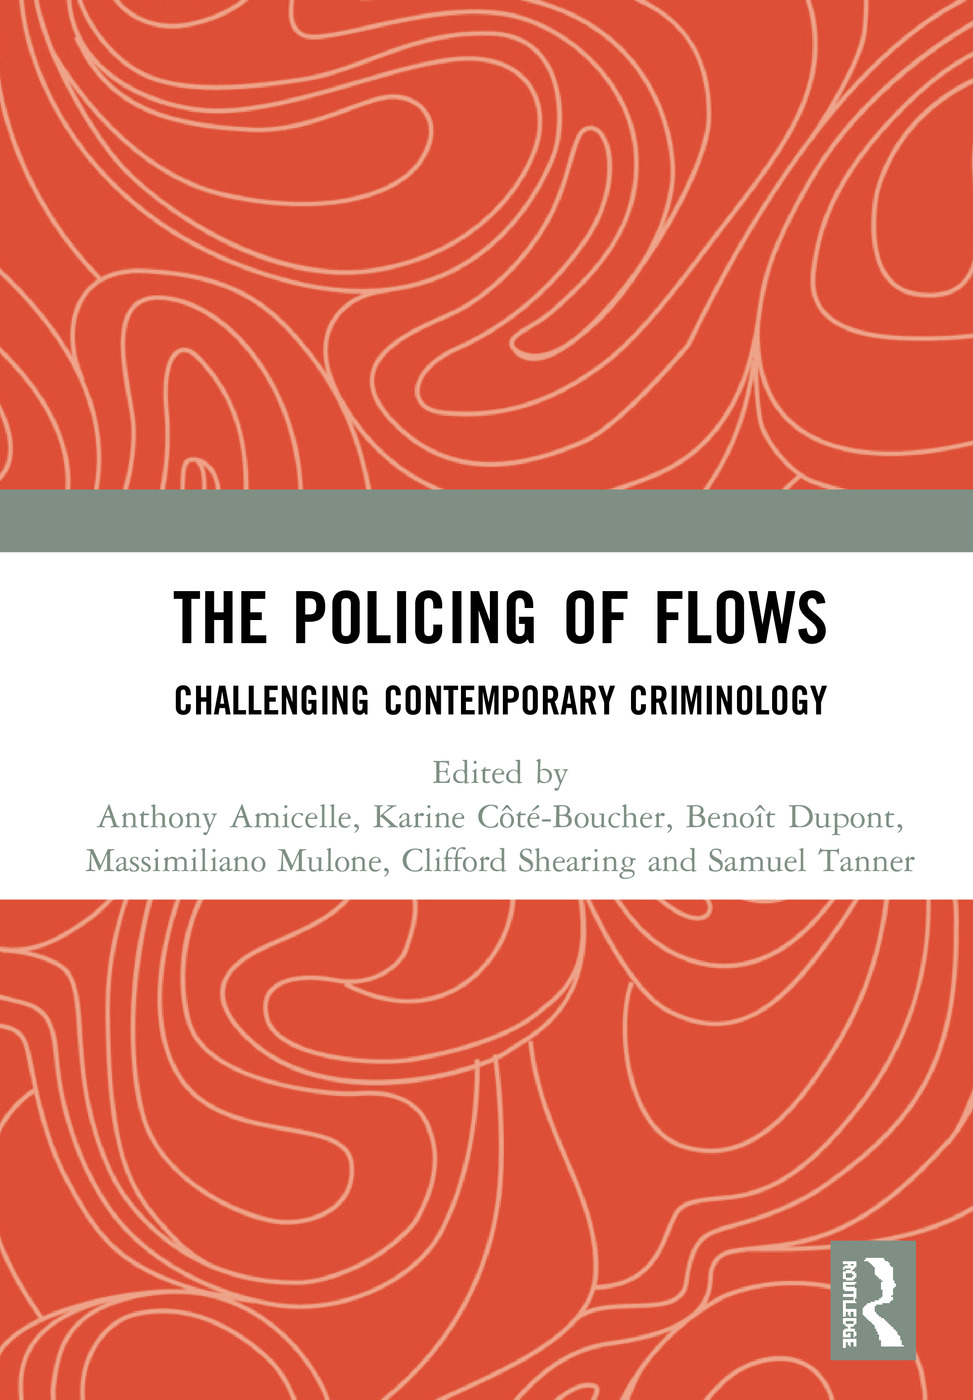 The Policing of Flows: Challenging Contemporary Criminology book cover